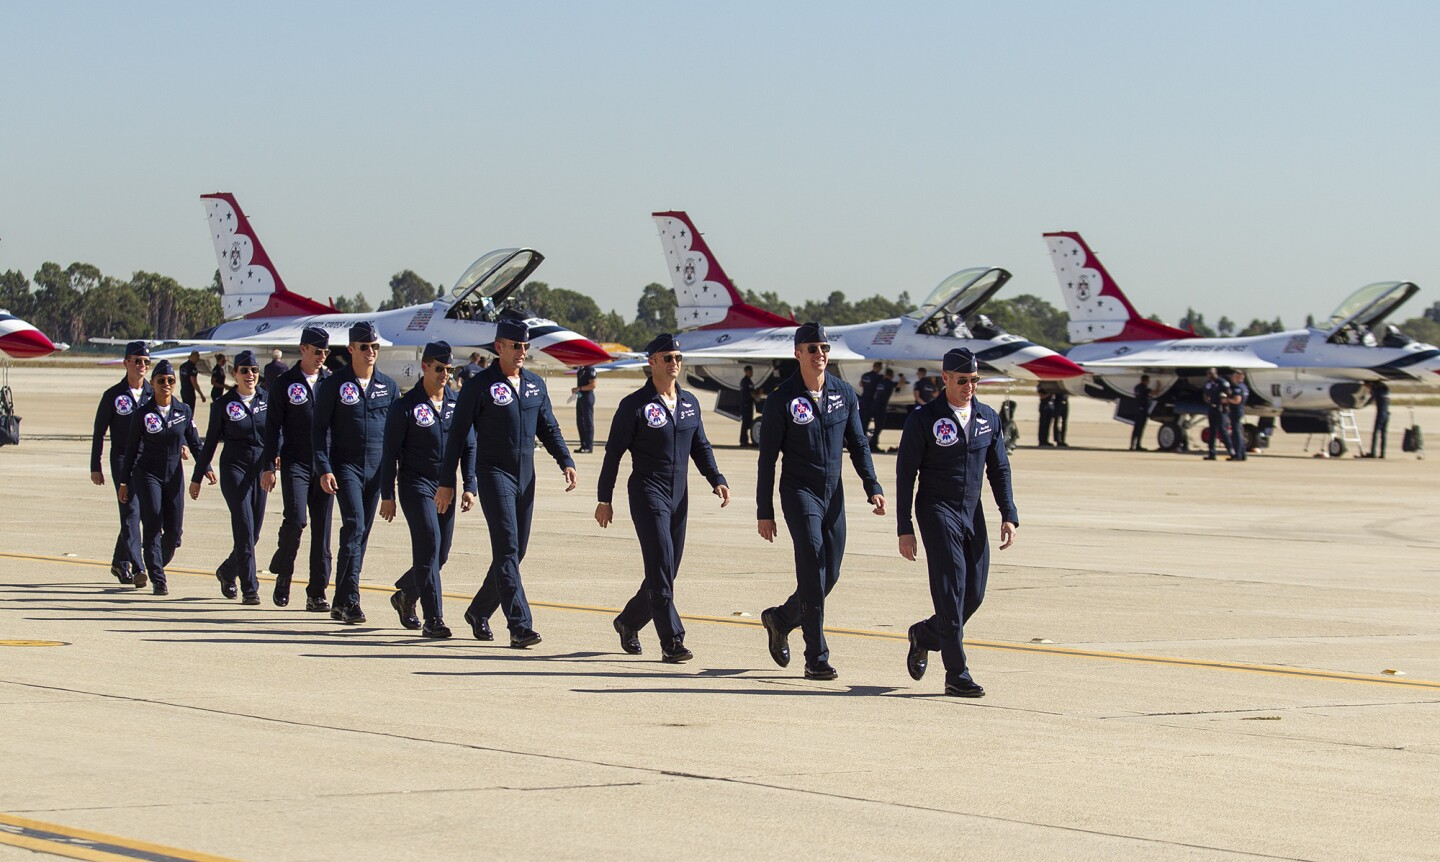 tn-dpt-me-hb-airshow-performers-001